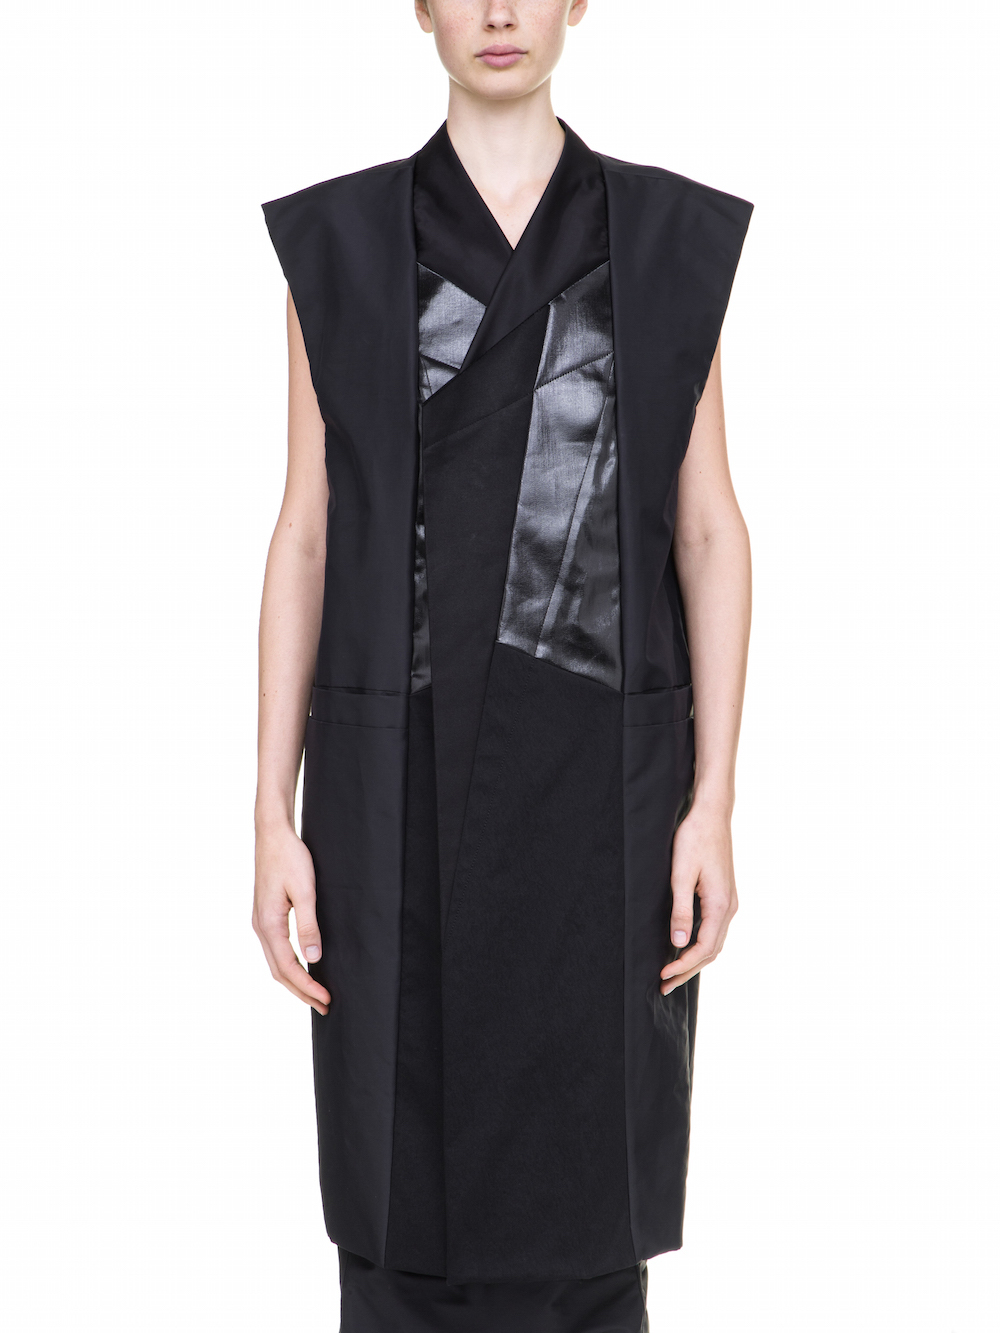 RICK OWENS ASSEMBLY DAGGER BLACK COAT IS SLEEVELESS AND WITH GEOMETRICAL PATCHWORK